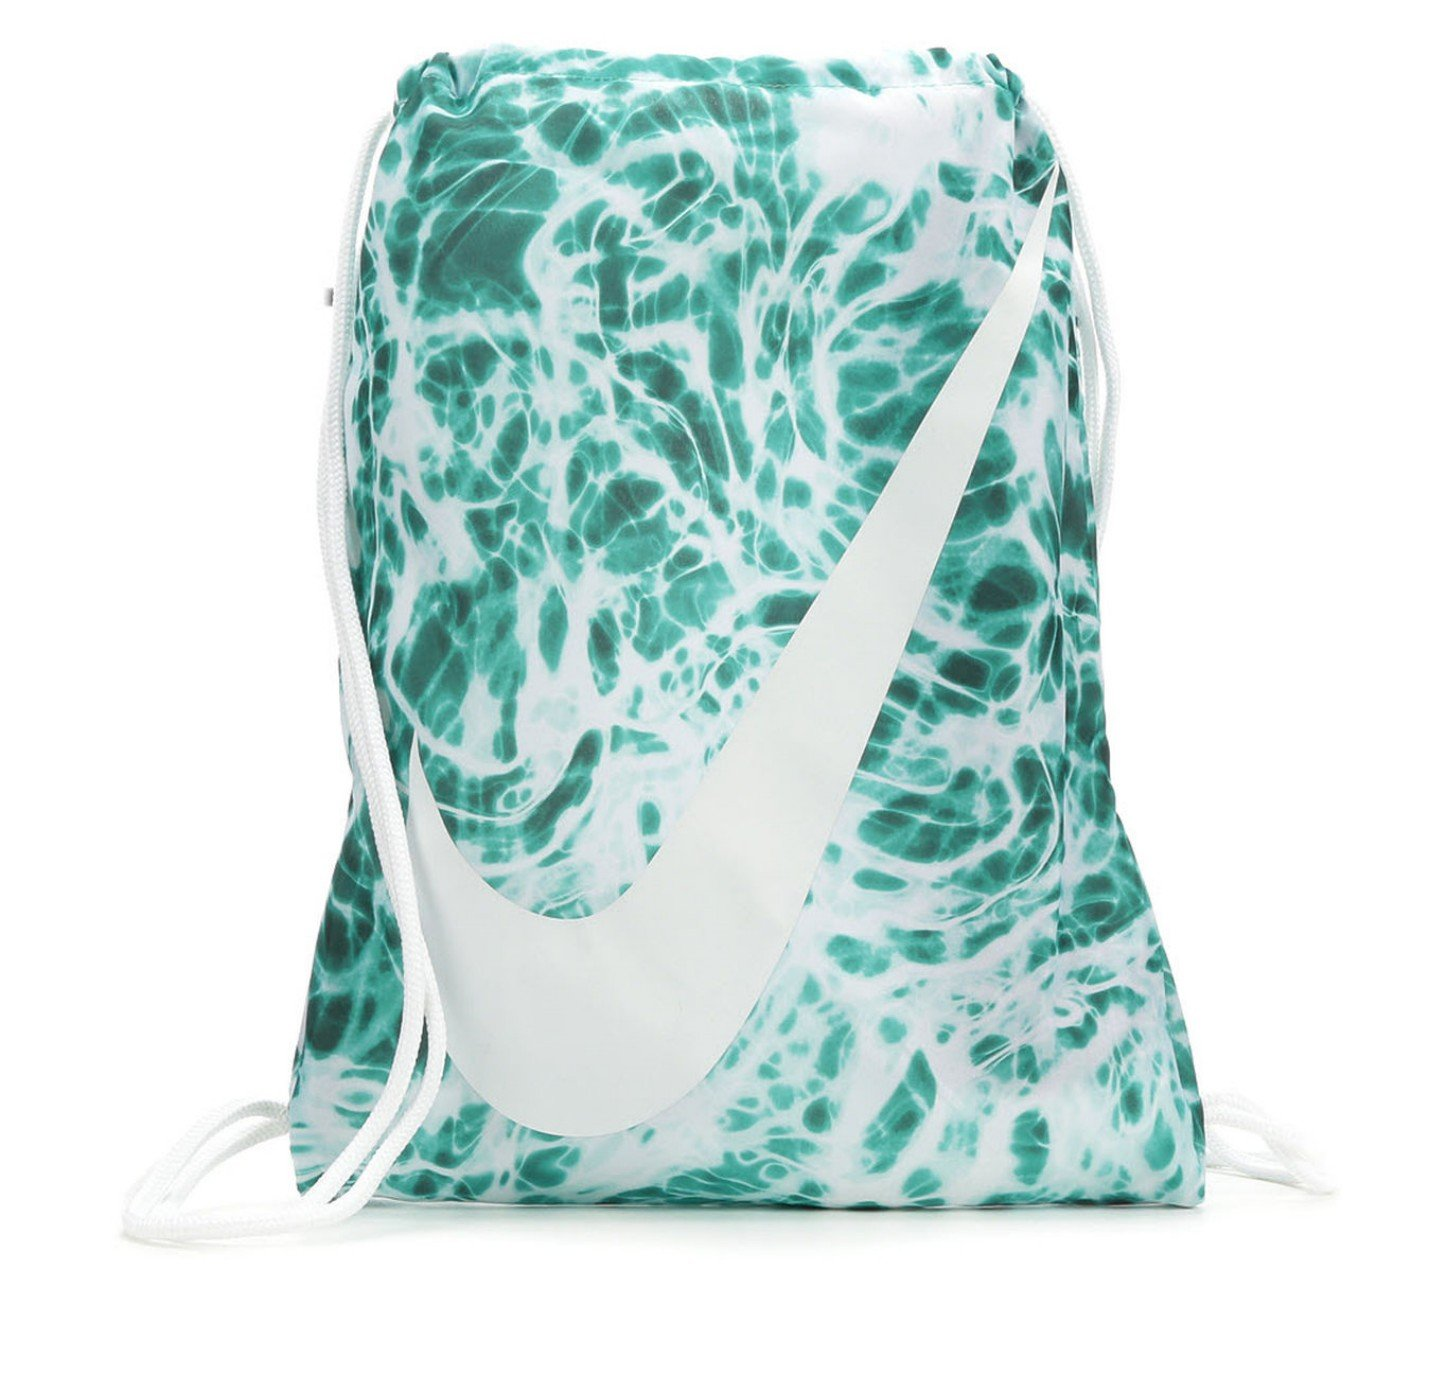 NIKE Young Athlete Drawstring Gymsack Backpack Sport Bookbag (Emerald Splash Graphics/White Signature Large Brand Name Logo and Swoosh)